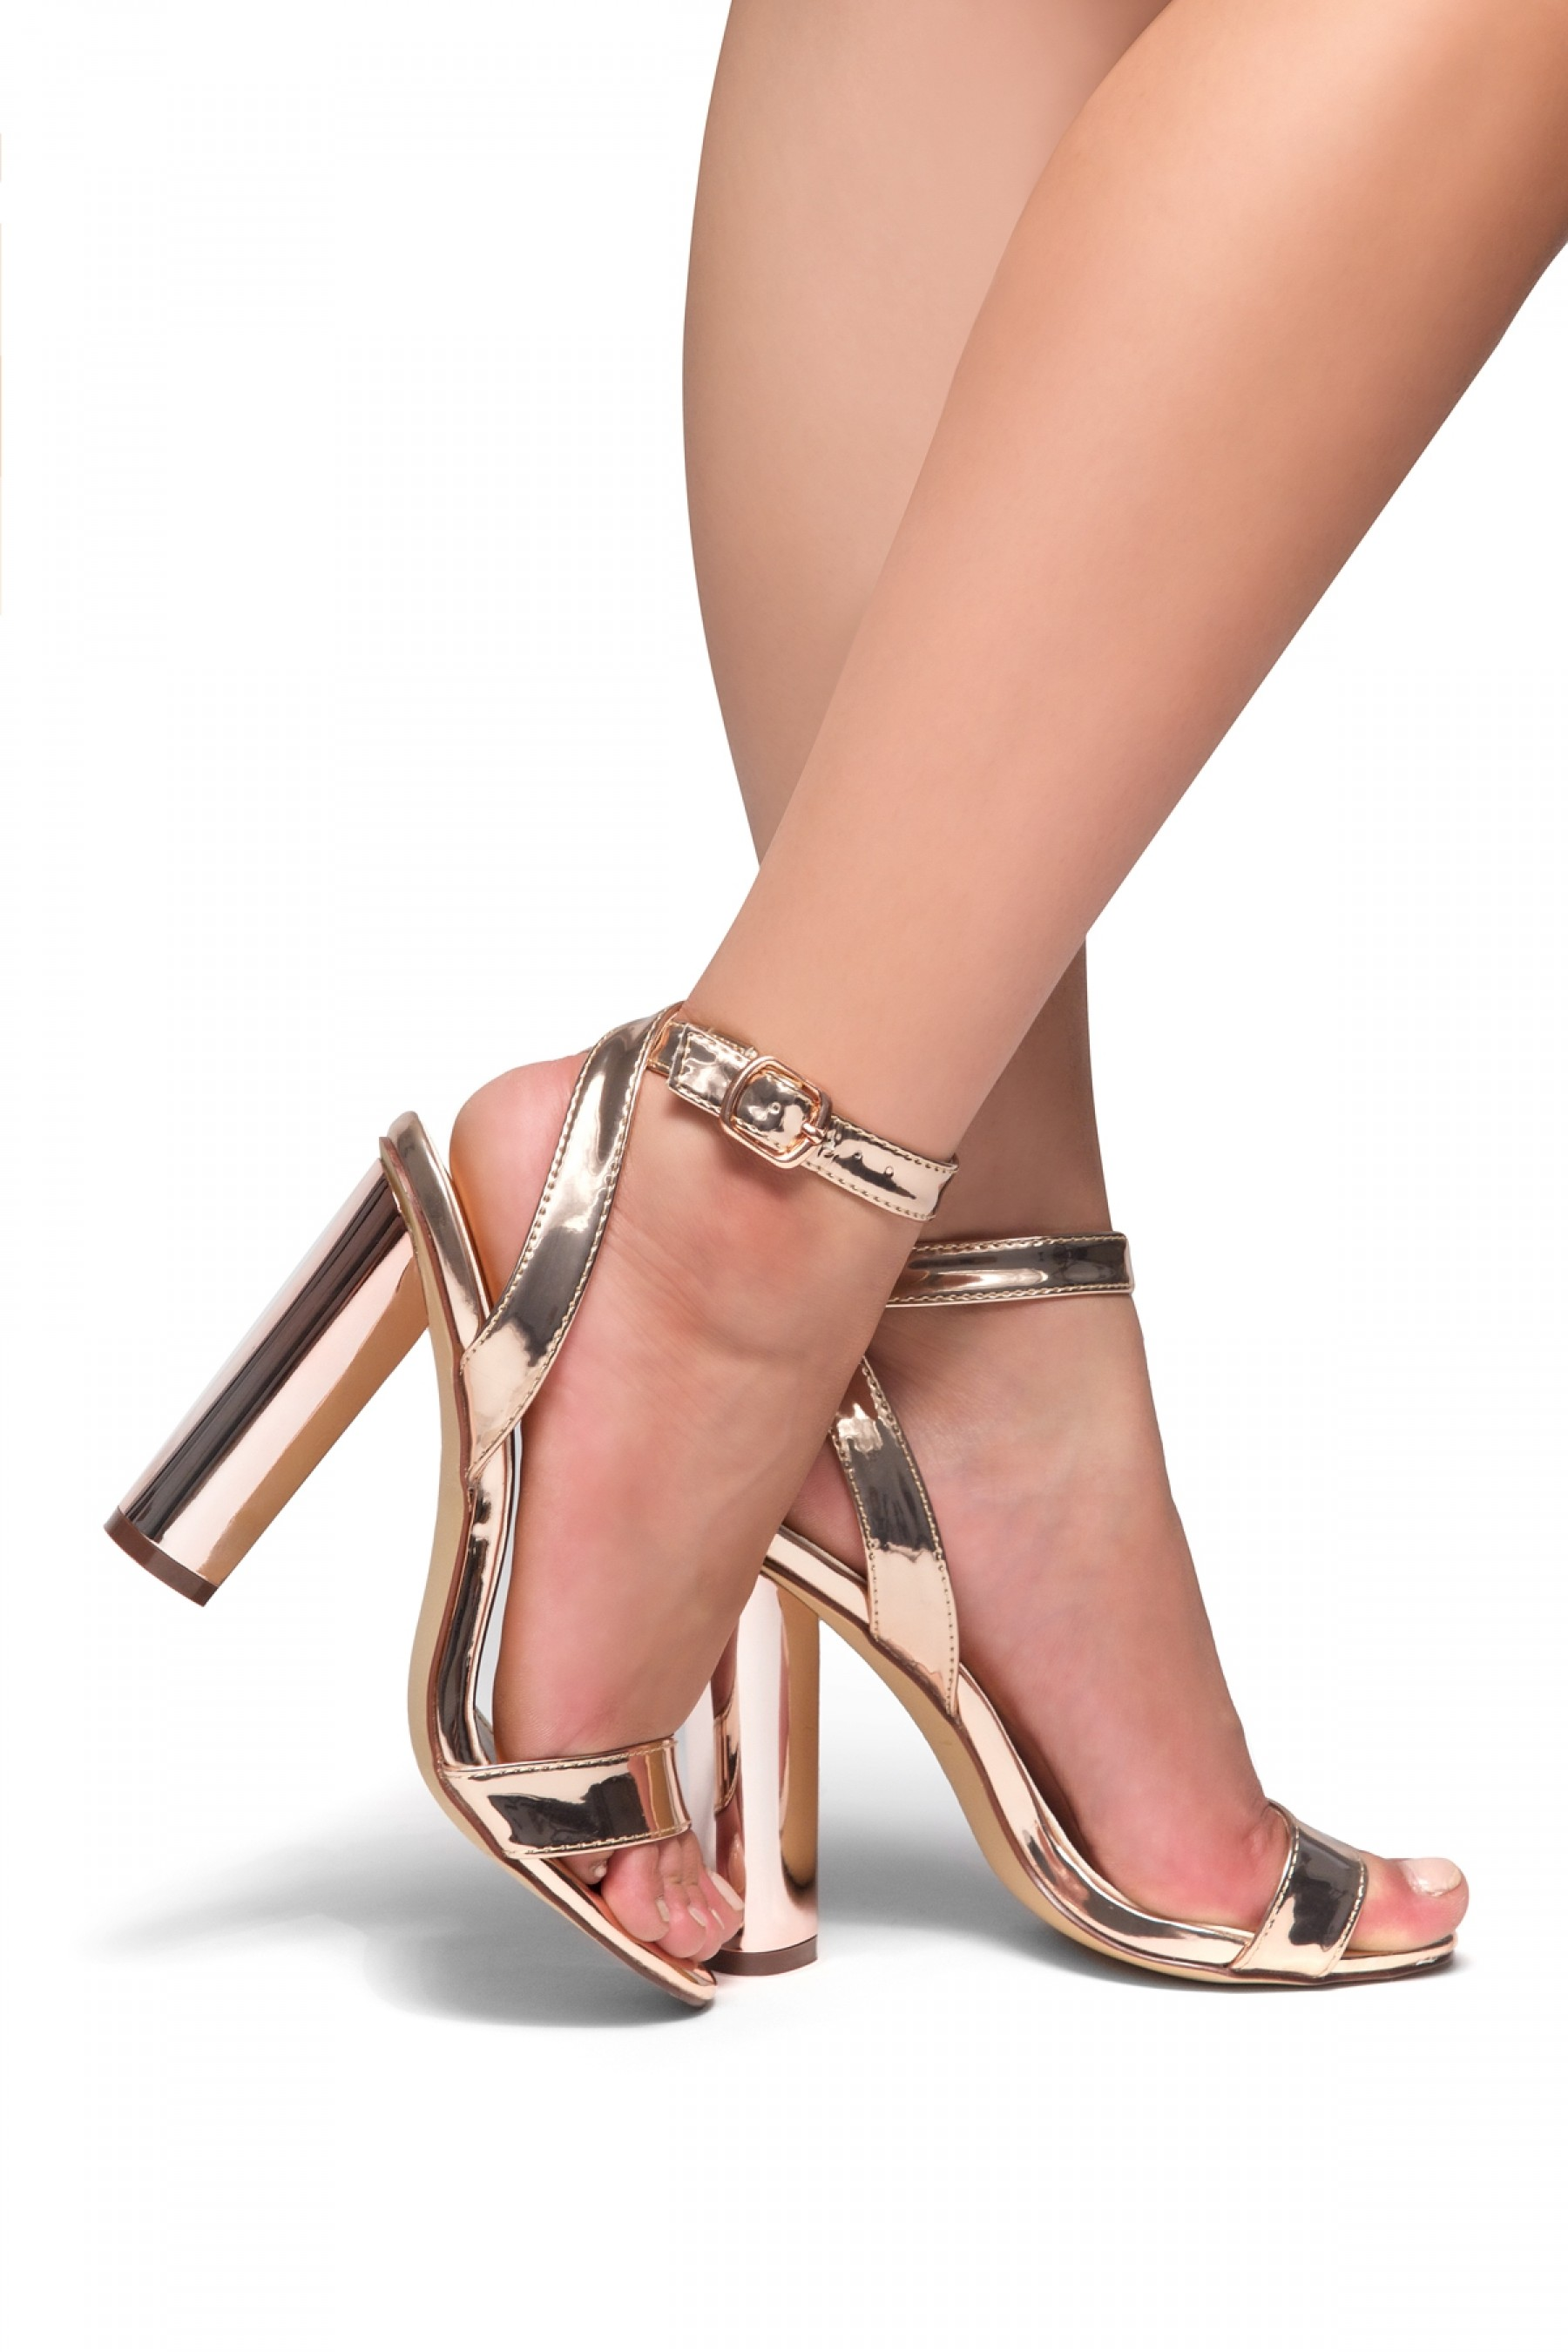 strappy image peep gold red heels stiletto ankle black onlineshoe back toe womens anklet sandals high cuff